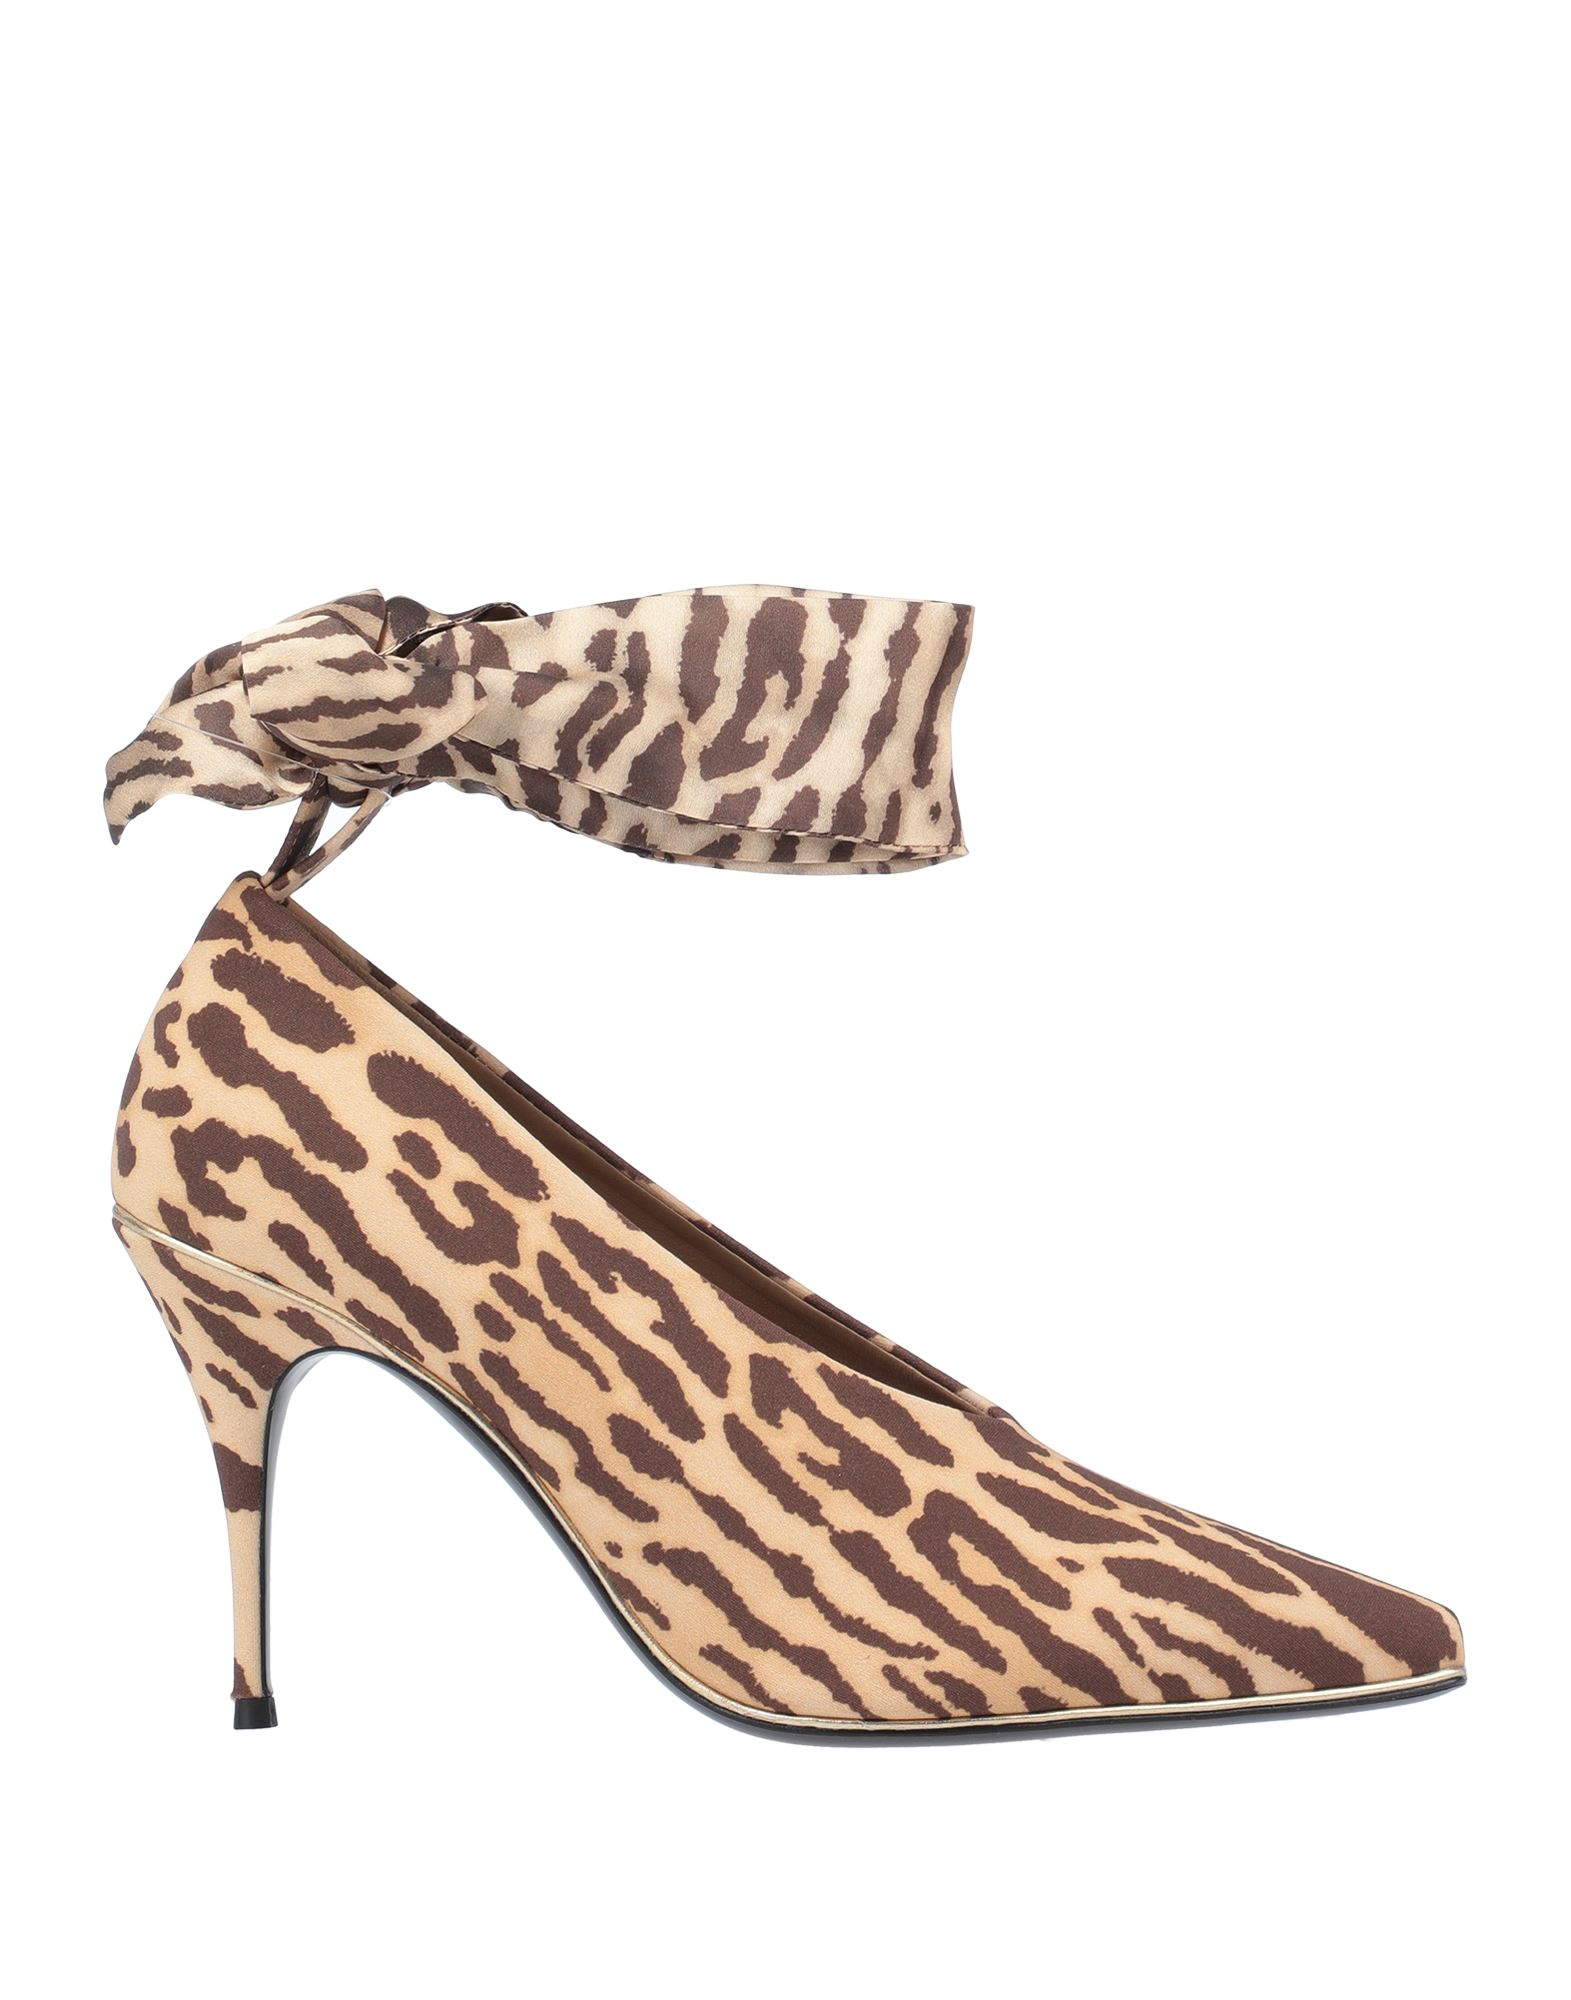 ZIMMERMANN Pumps. plain weave, no appliqués, animal print, wrapping straps closure, narrow toeline, spike heel, covered heel, leather lining, leather sole, contains non-textile parts of animal origin. Textile fibers